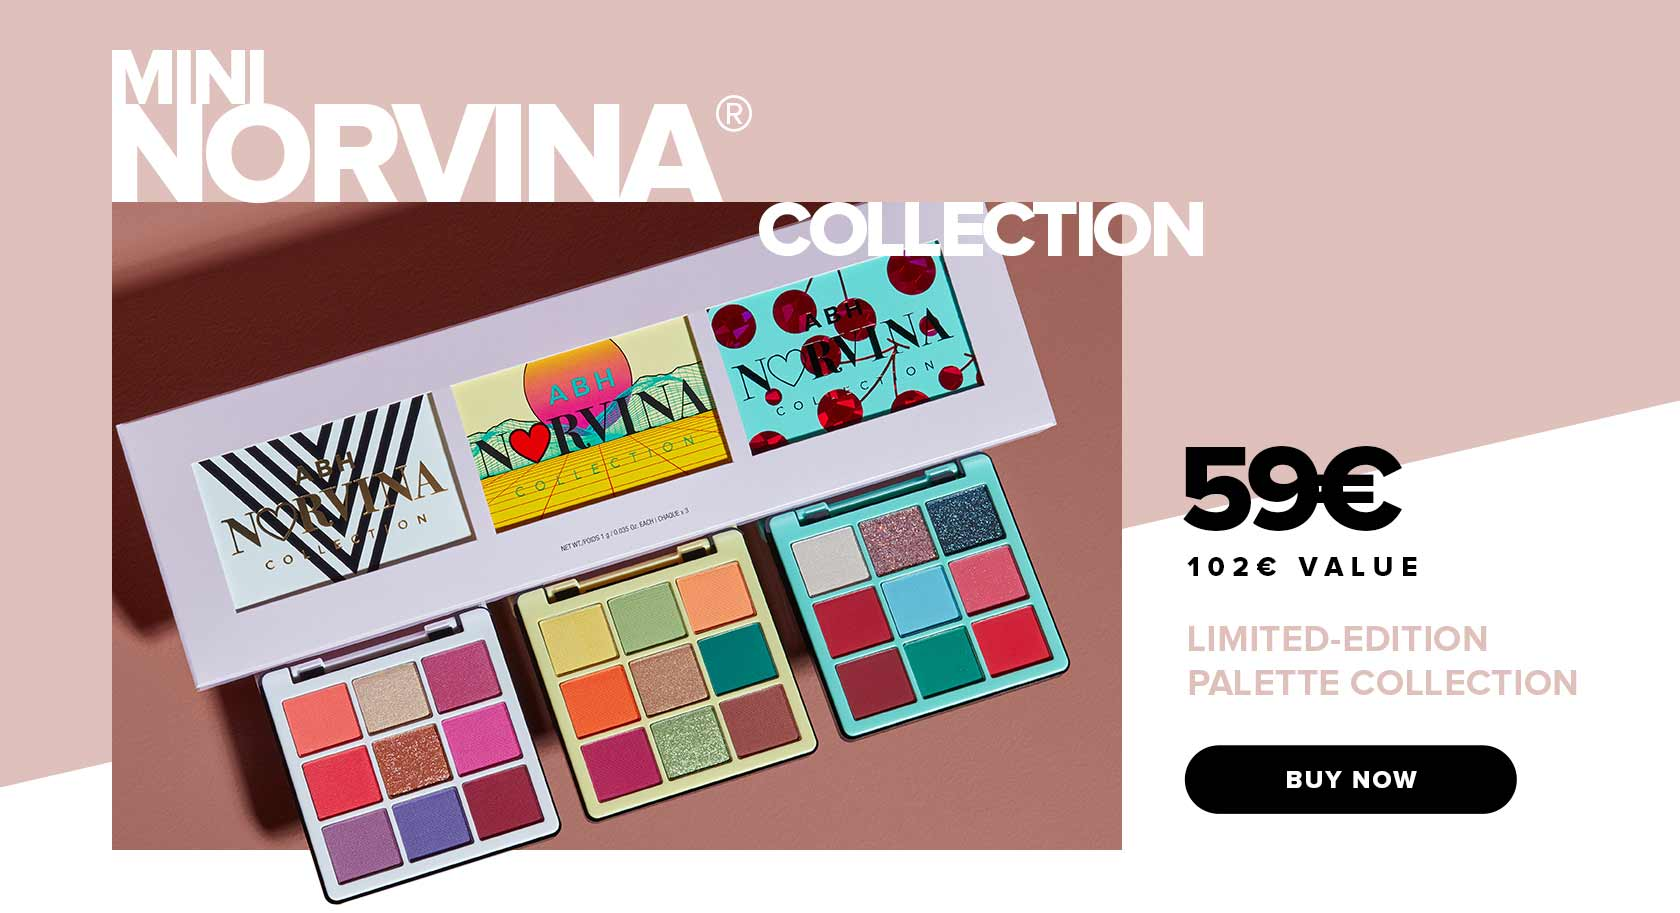 Mini Norvina Collection Limited Edition Palette Collection